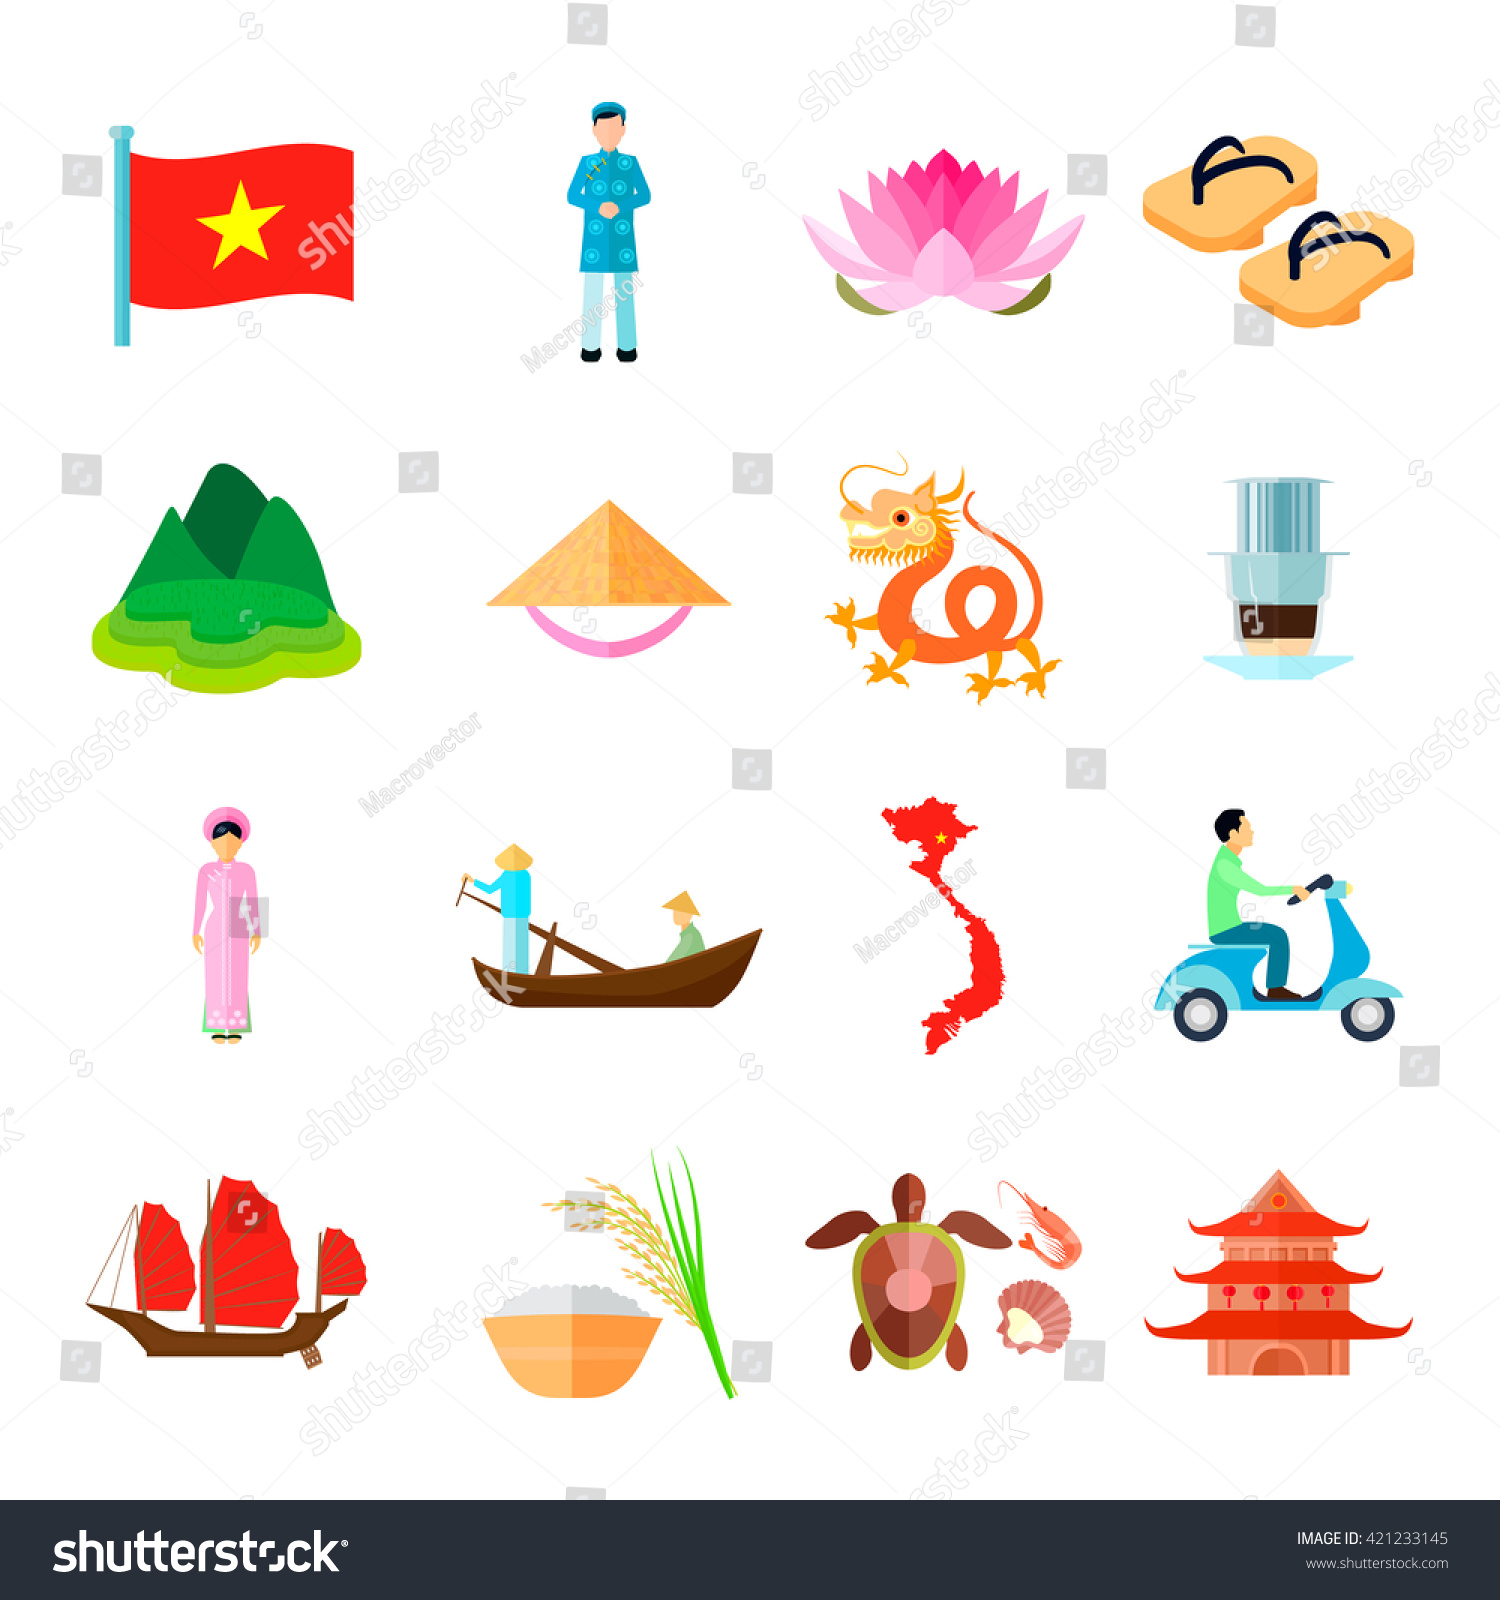 Vietnam Culture Symbols Flat Icons Set Stock Vector Royalty Free 421233145